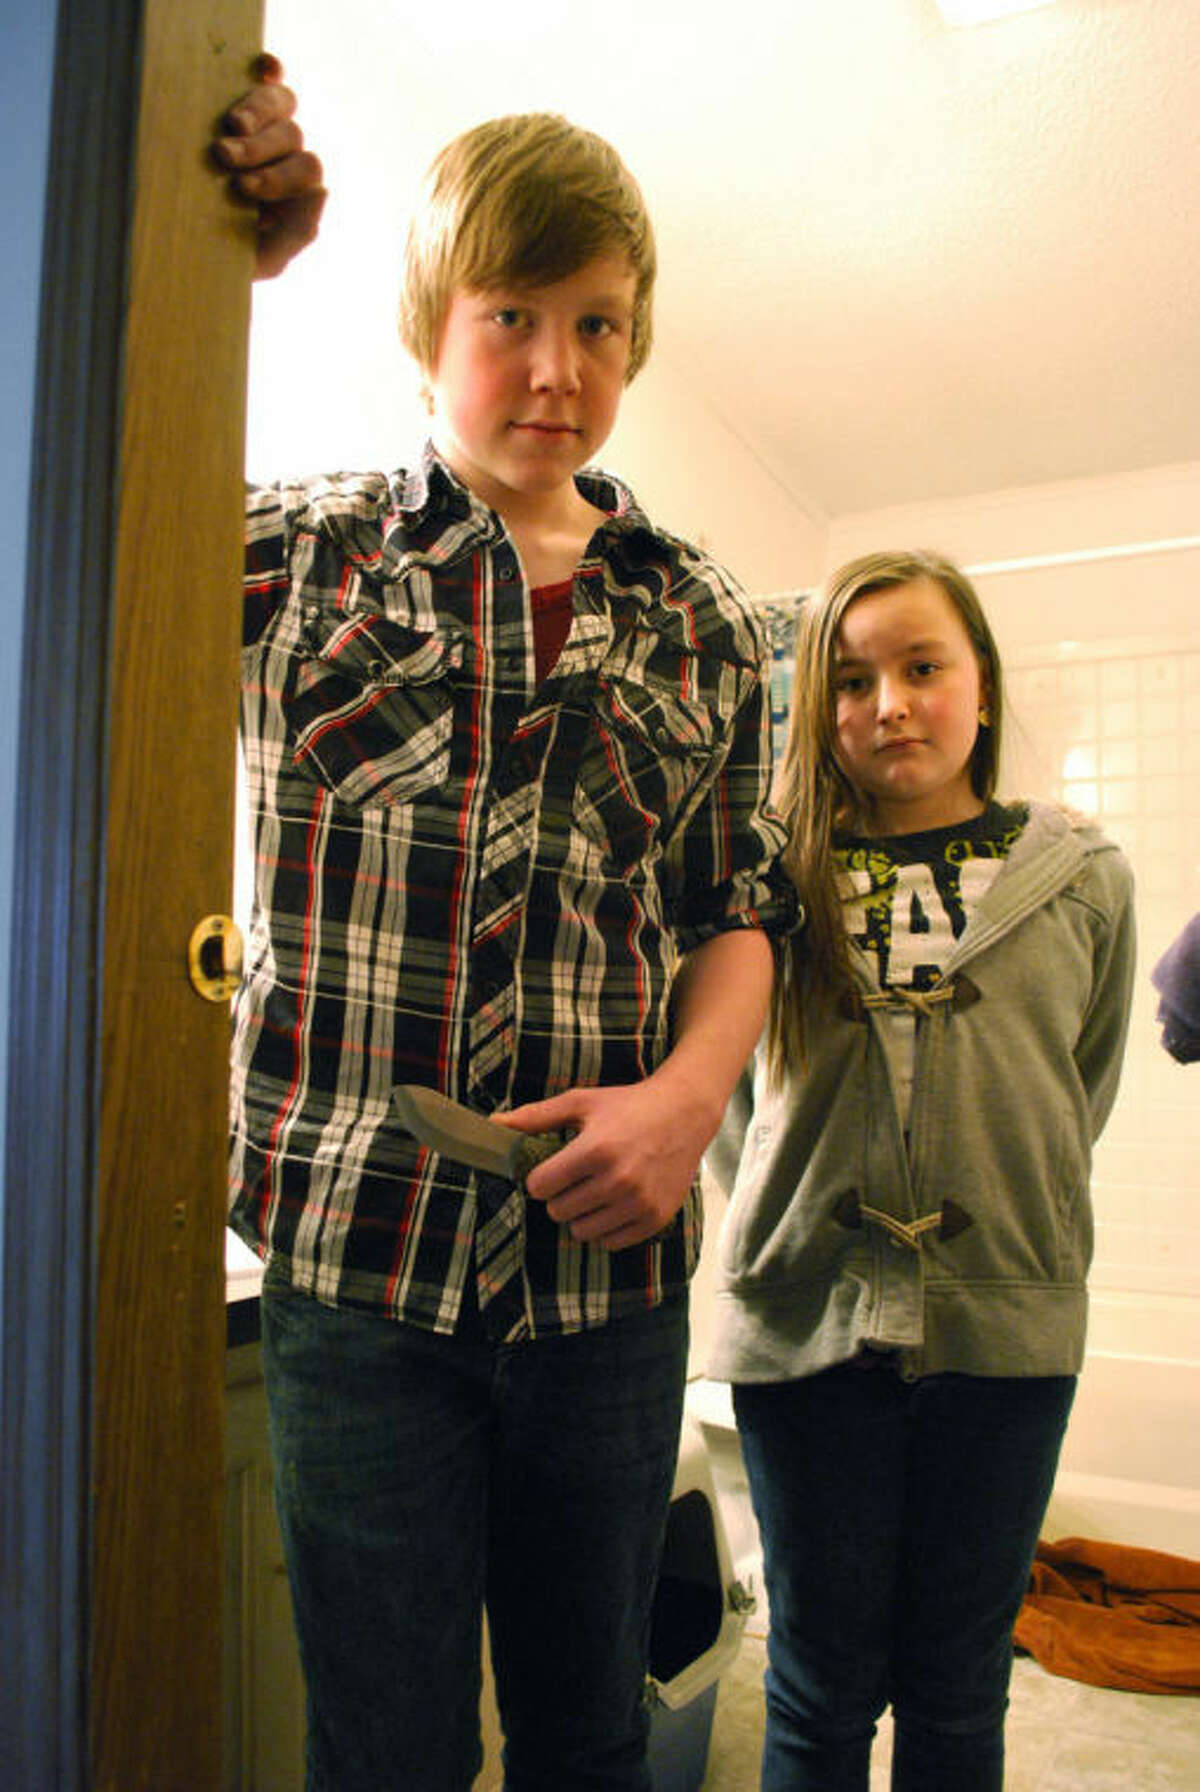 AP Photo | Detroit Free Press, John CarlisleJames Persyn III, 14, holds the knife he armed himself with on Wednesday night while posing for a picture with his sister, Acelin Persyn, 11, a their Shepherd home.